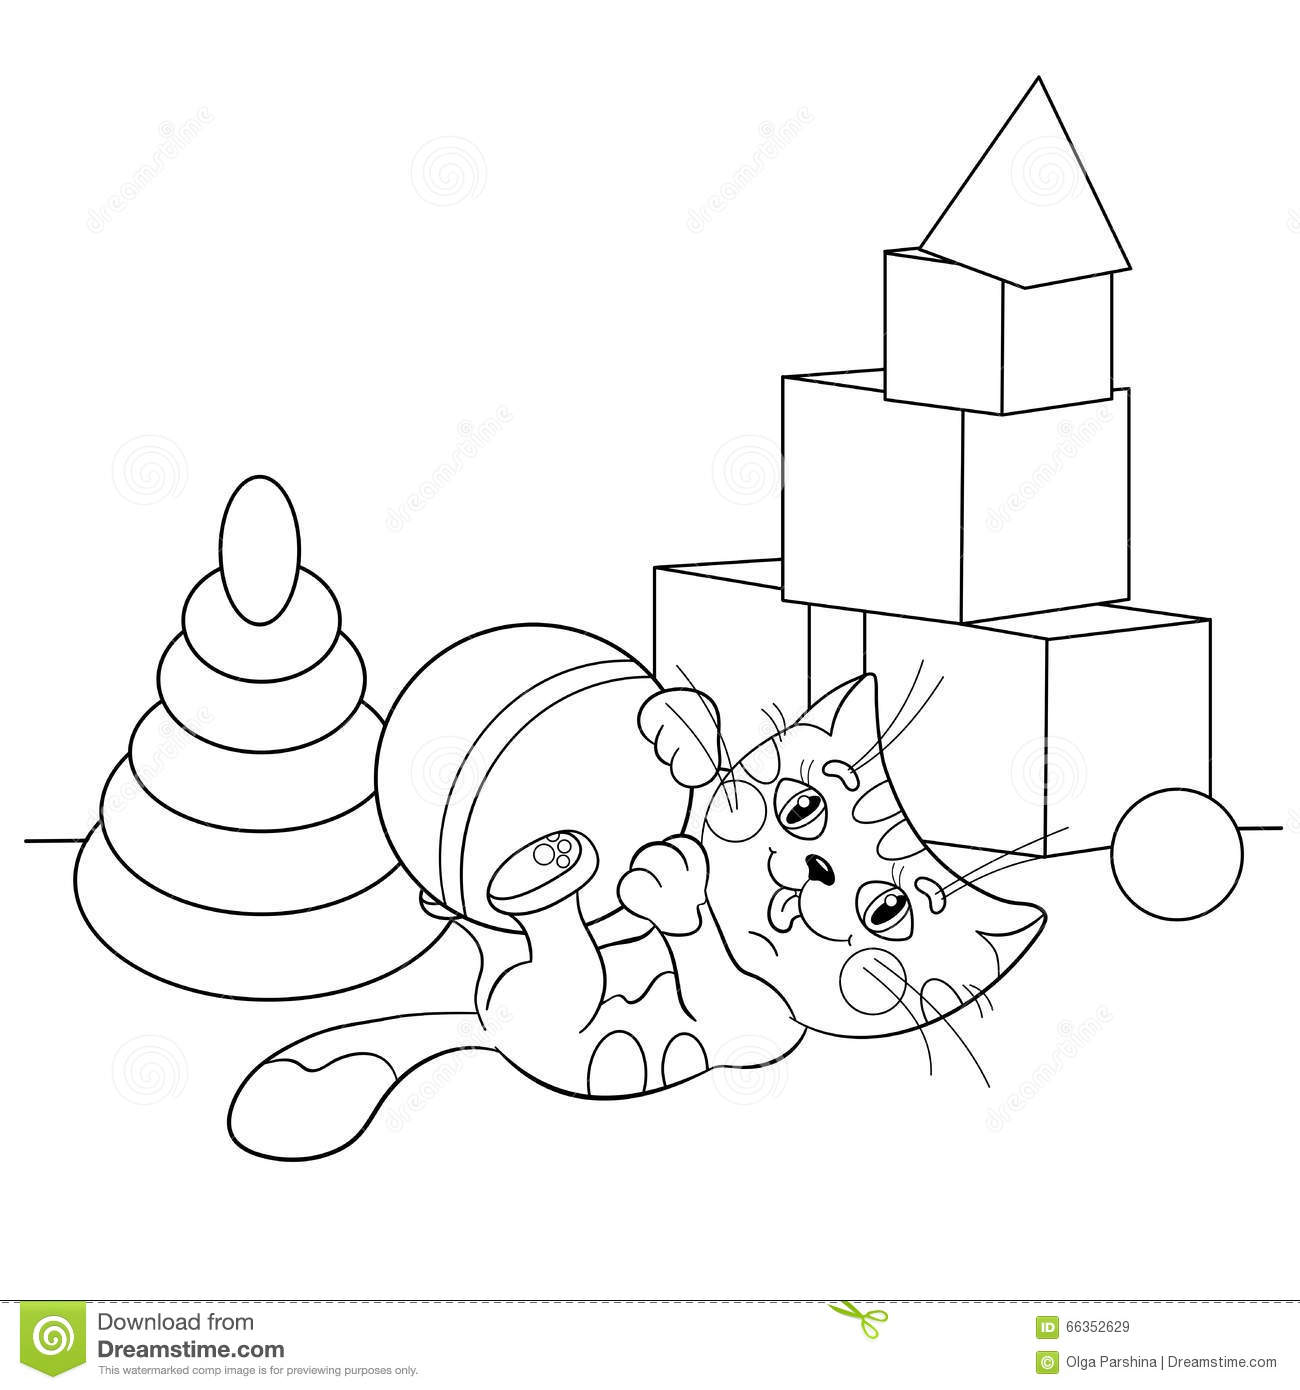 coloring page outline of cartoon cat playing with toys stock